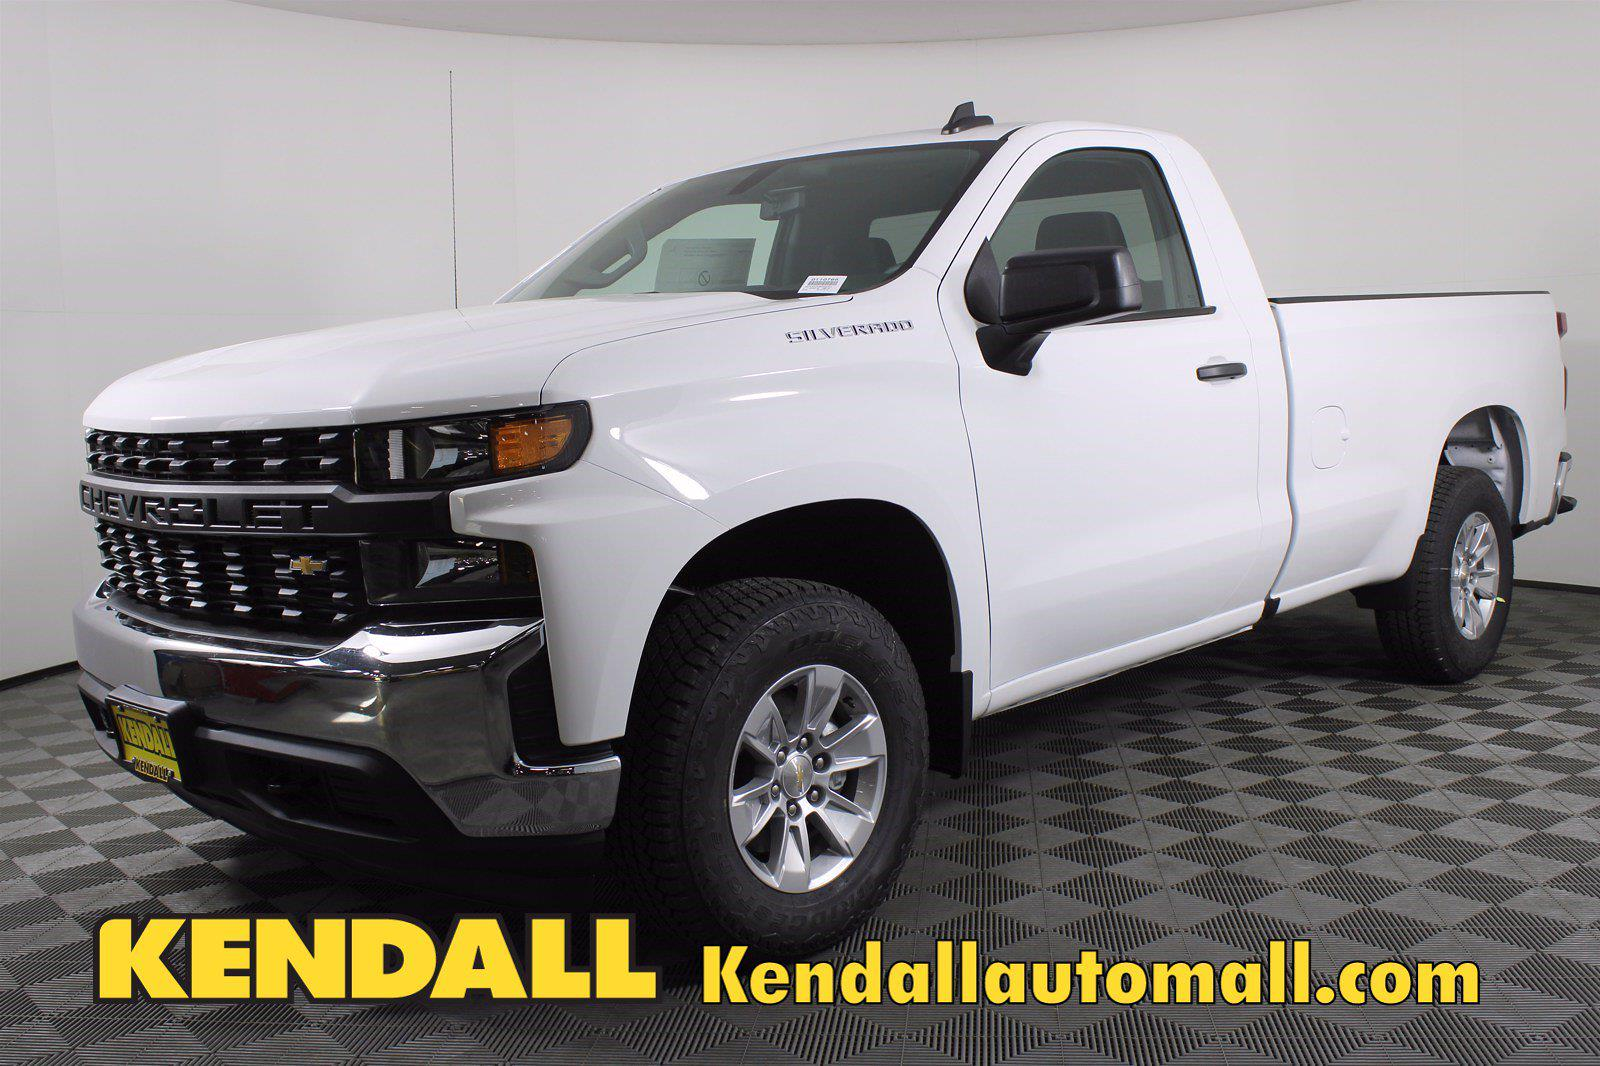 2021 Chevrolet Silverado 1500 Regular Cab 4x2, Pickup #D110765 - photo 1